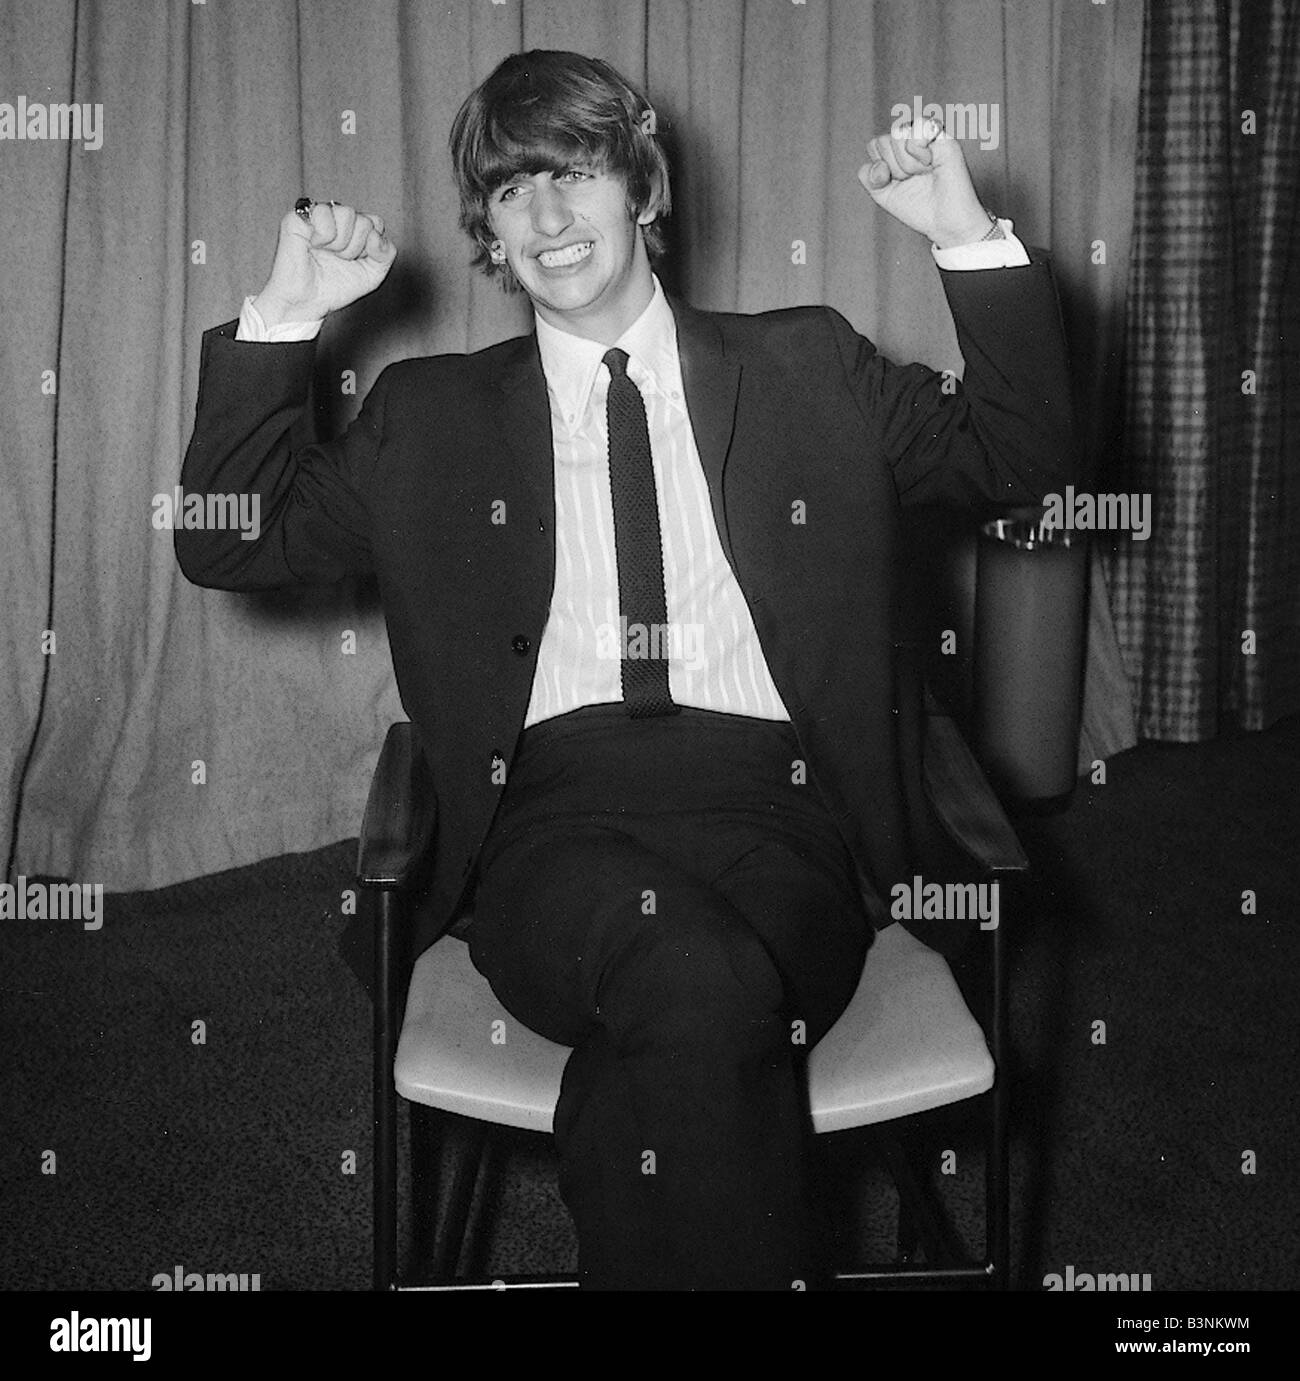 Beatles Files 1964 Ringo Starr Sitting On Chair Arms Raised February